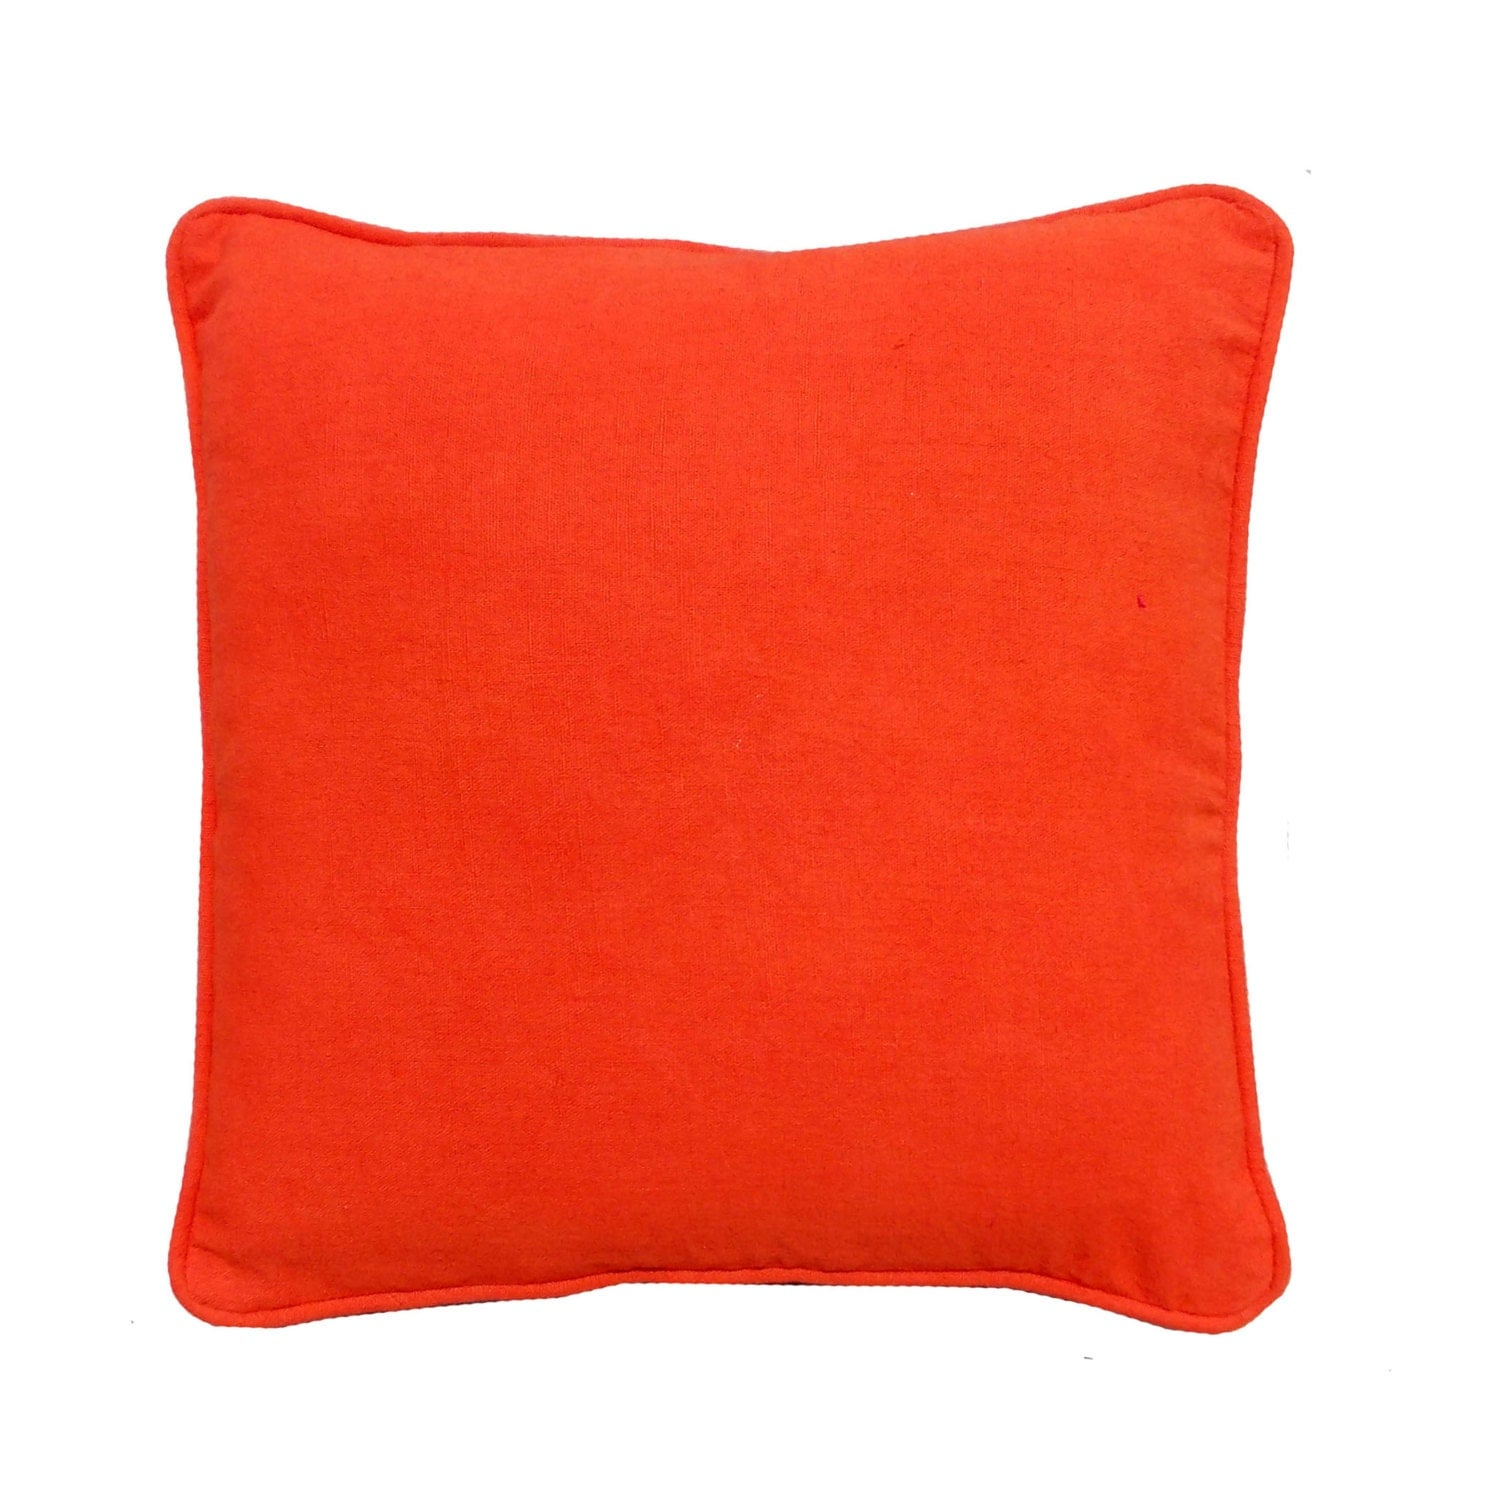 Throw Pillows With Orange : Decorative bright orange pillow cover cotton pillow cover